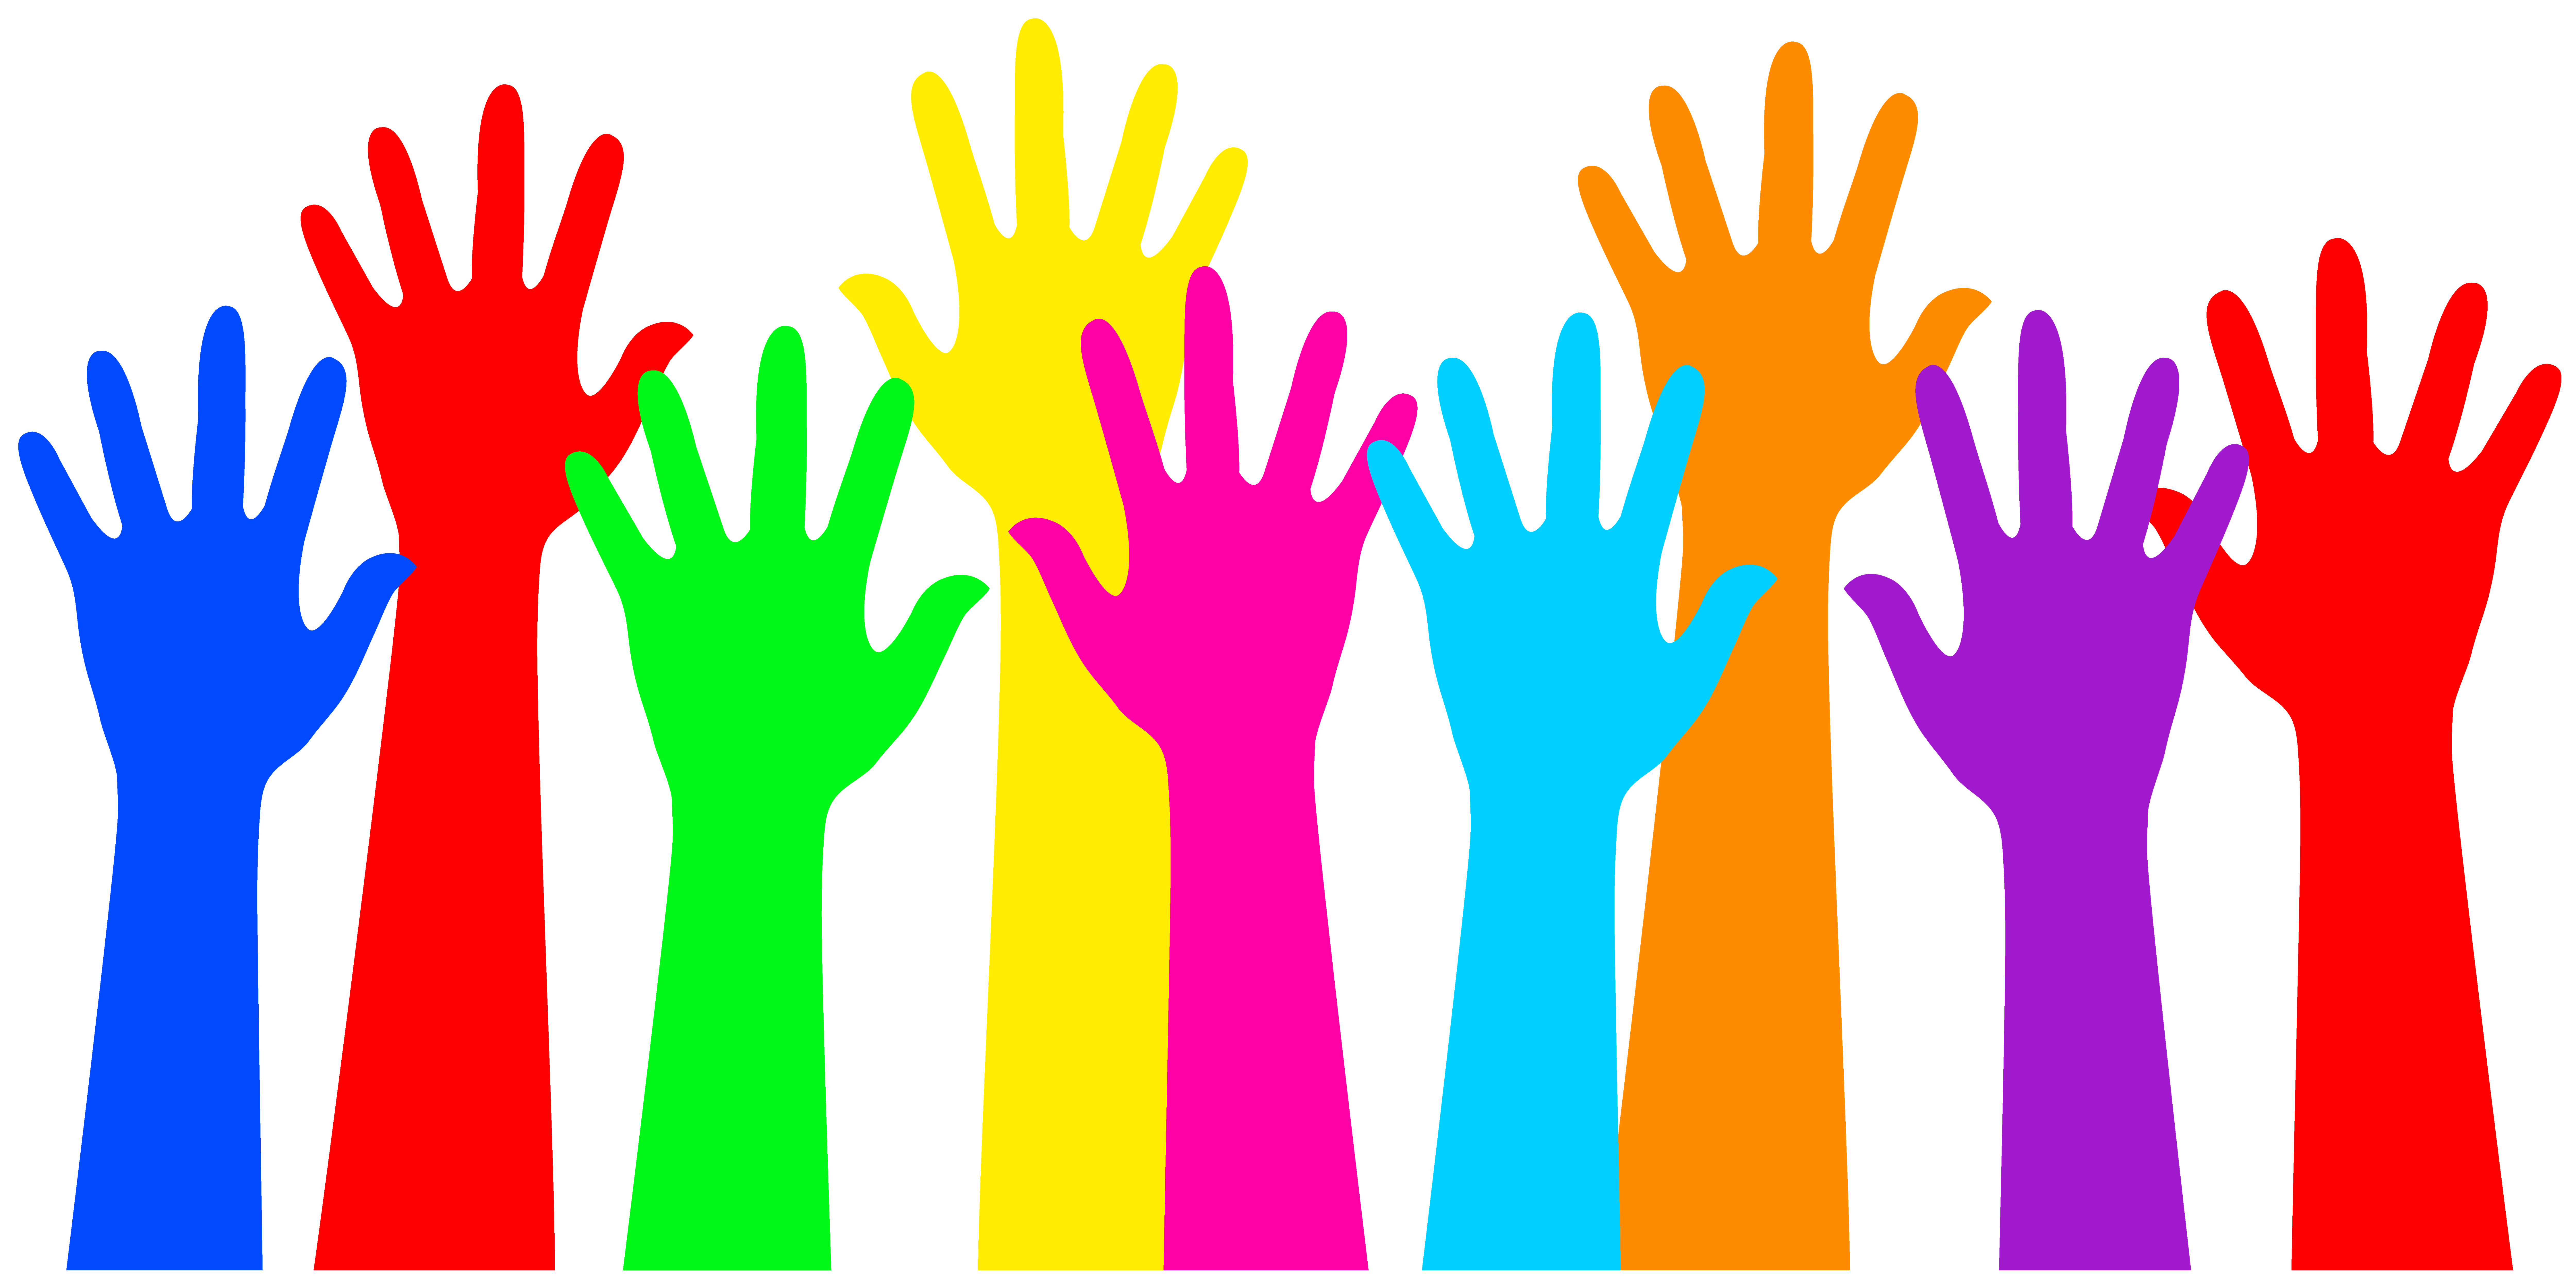 Diversity drawing colorful hand. Rainbow colored raised hands